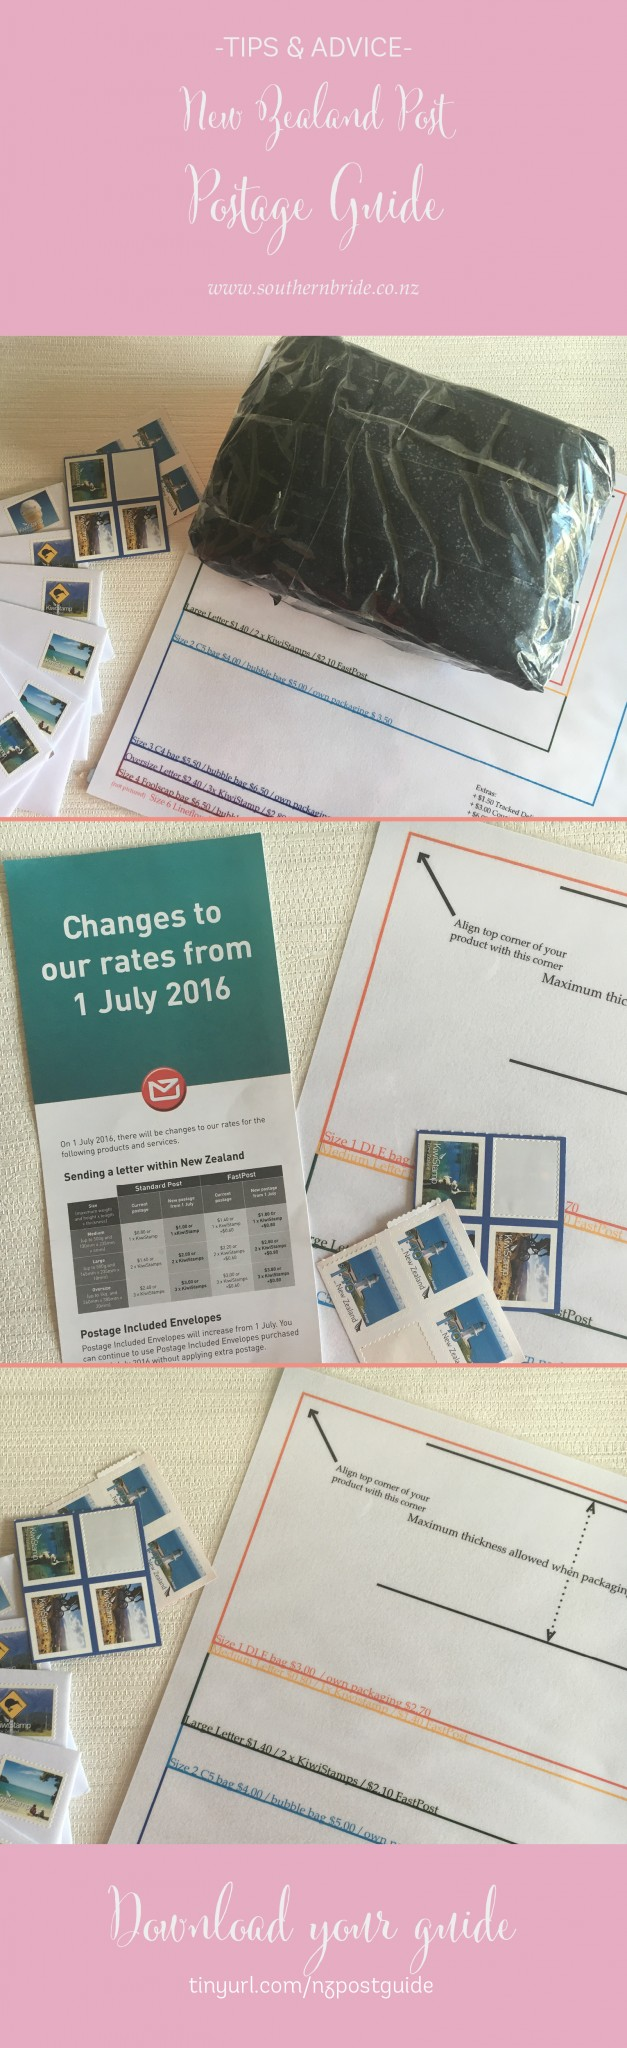 nz post printable letter guide